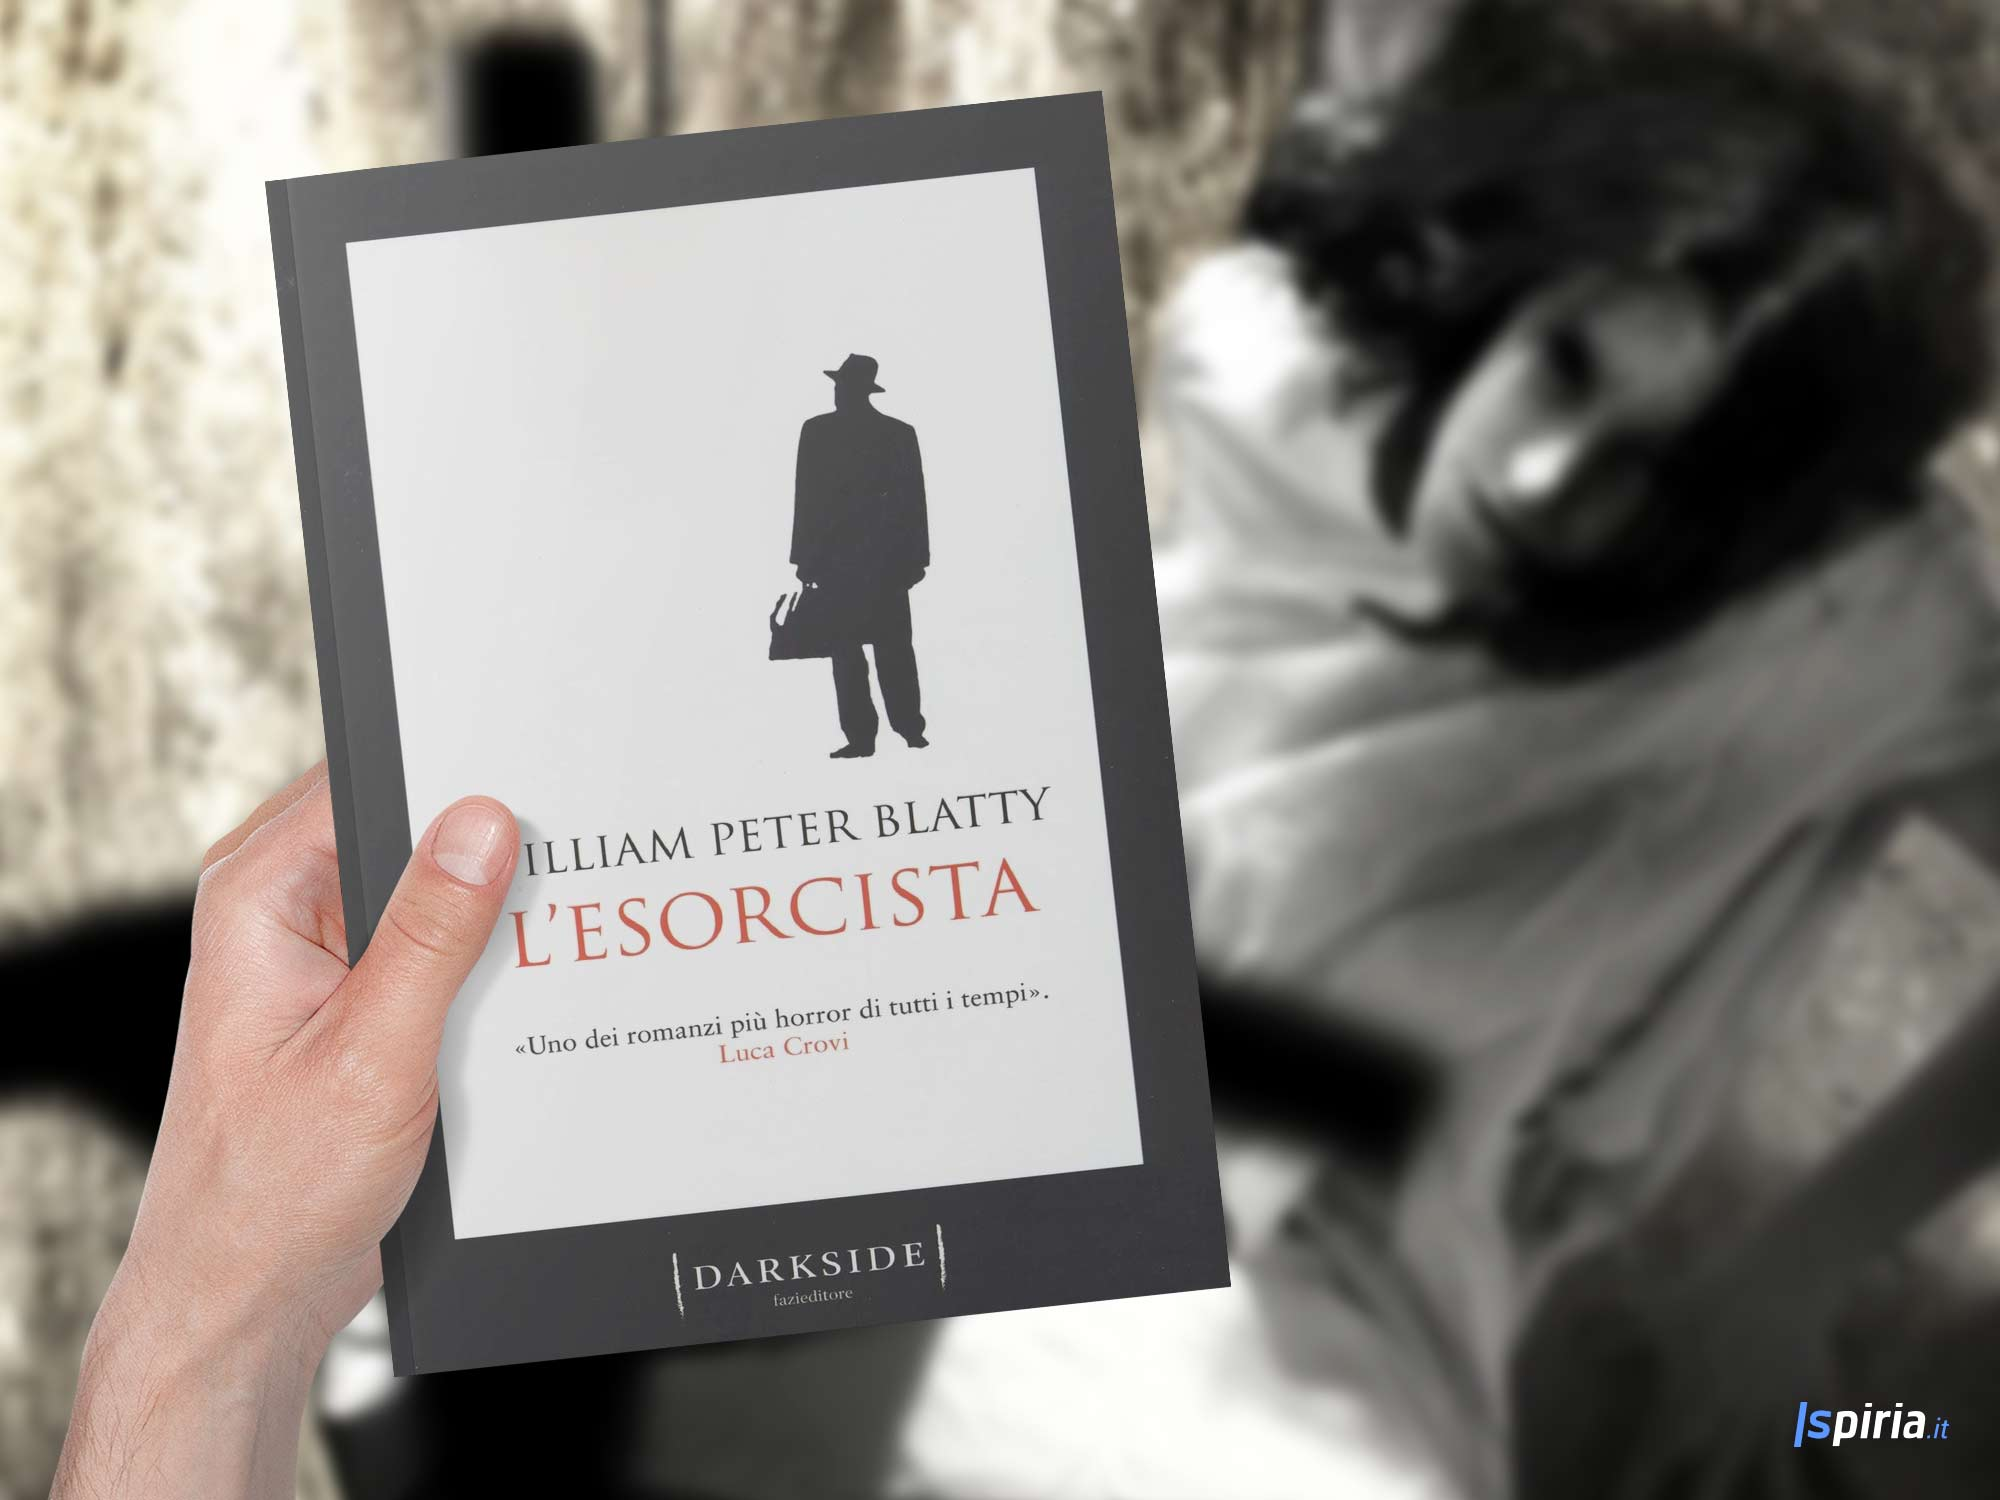 Libri-horror-esorcismo-esorcista-blatty